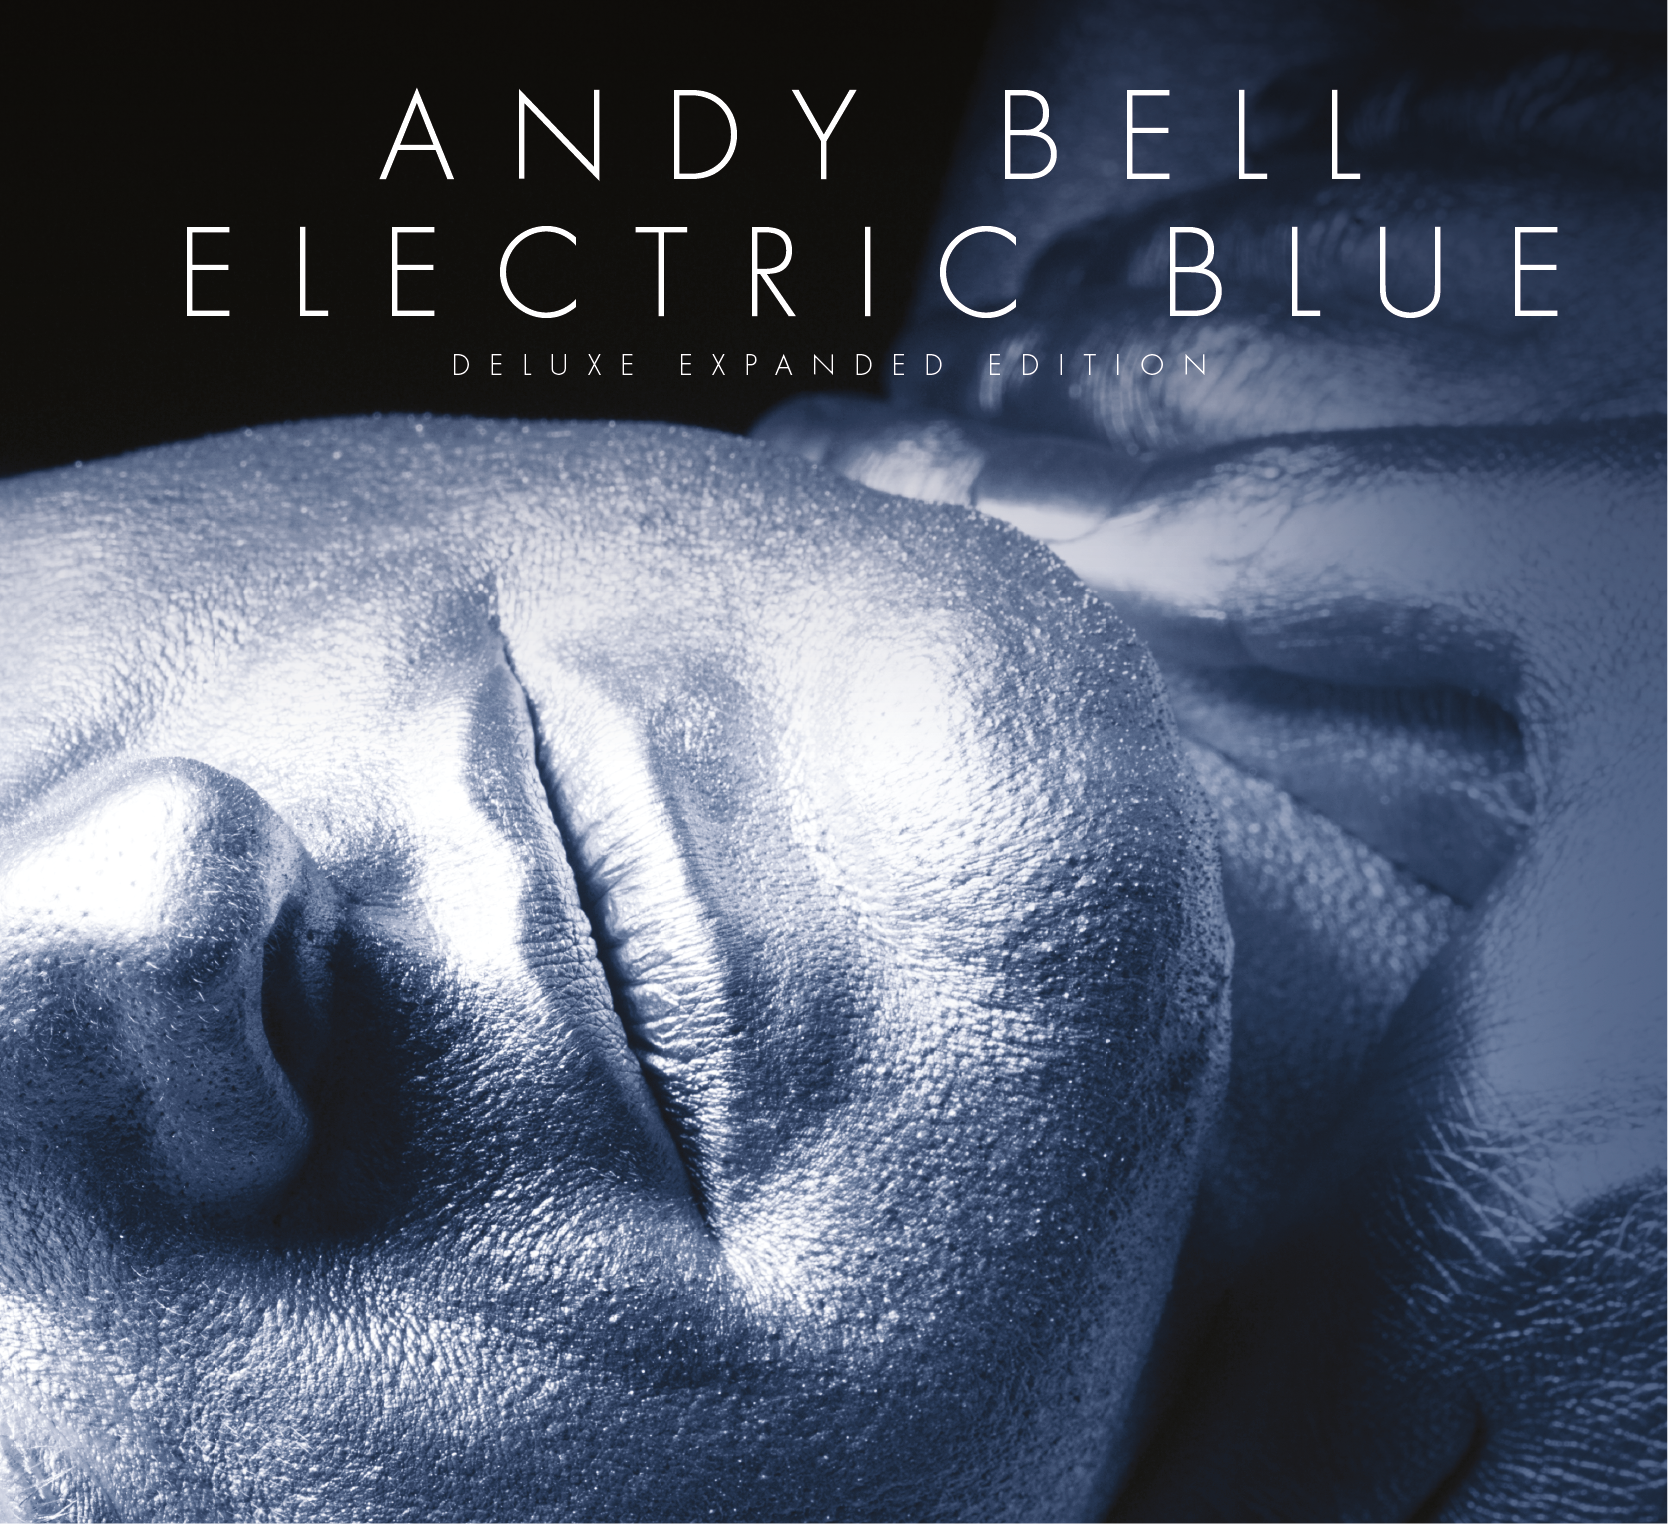 Andy Bell Electric Blue 3xcd Deluxe Expanded Edition